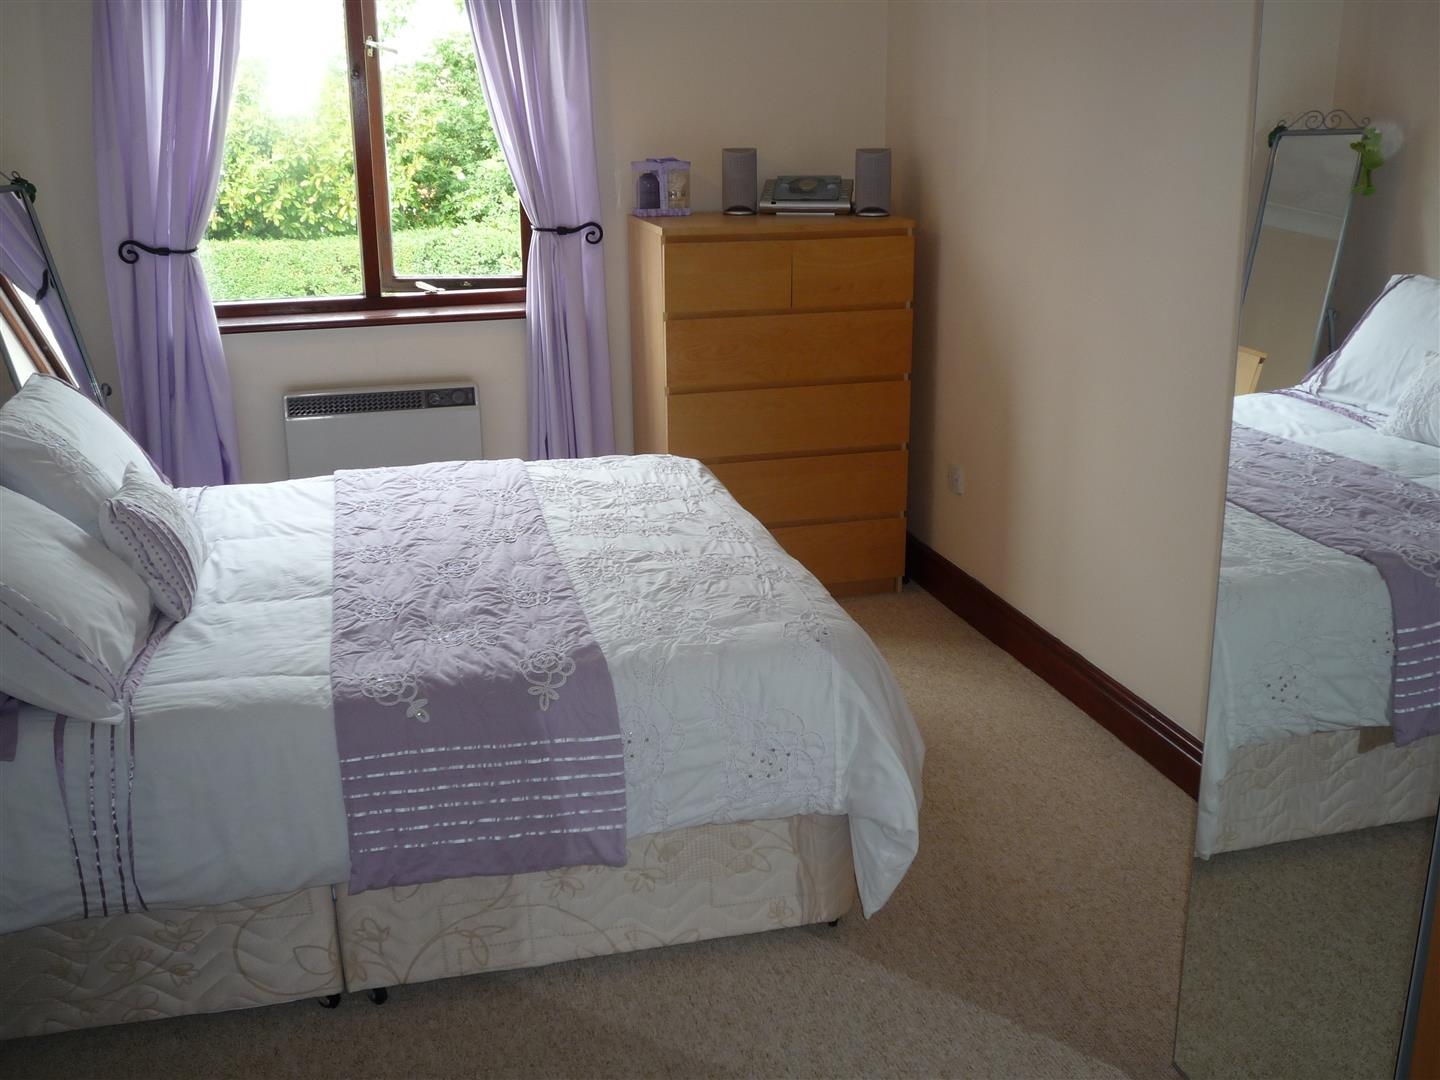 2 bed flat to rent in Long Sutton Spalding, PE12 9RL 5